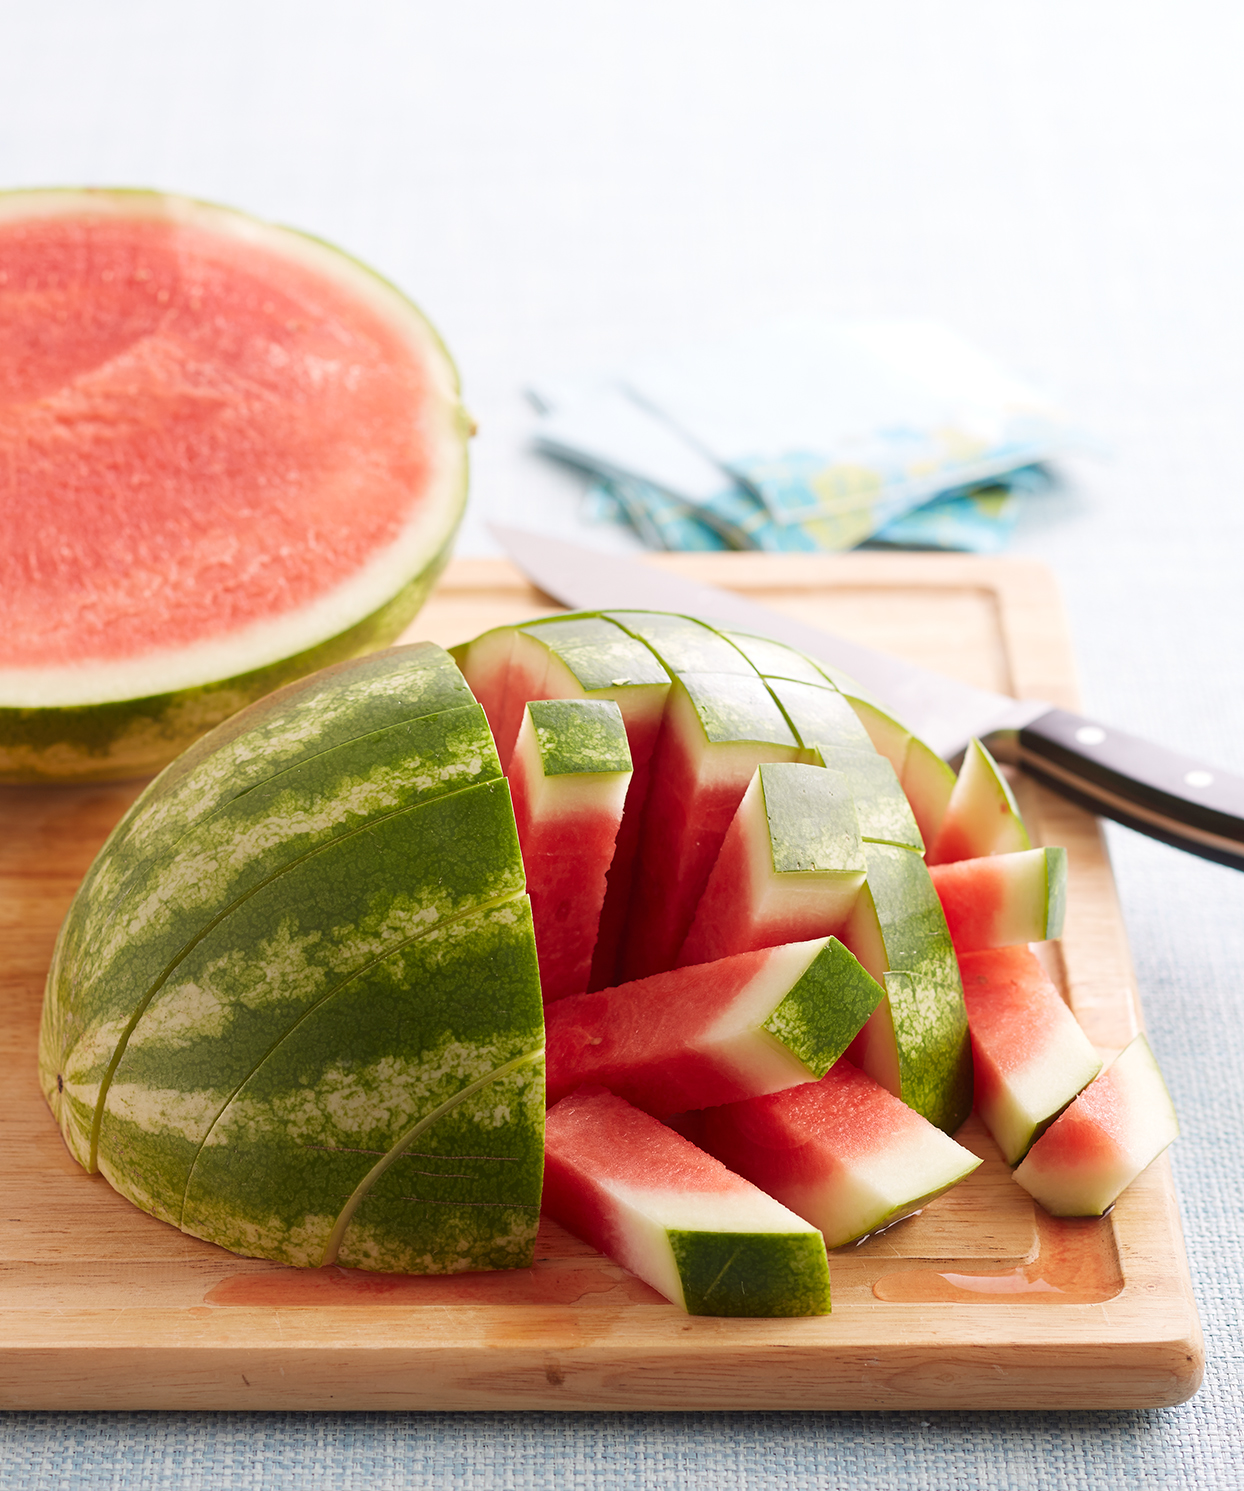 sliced watermelon on cutting board with knife